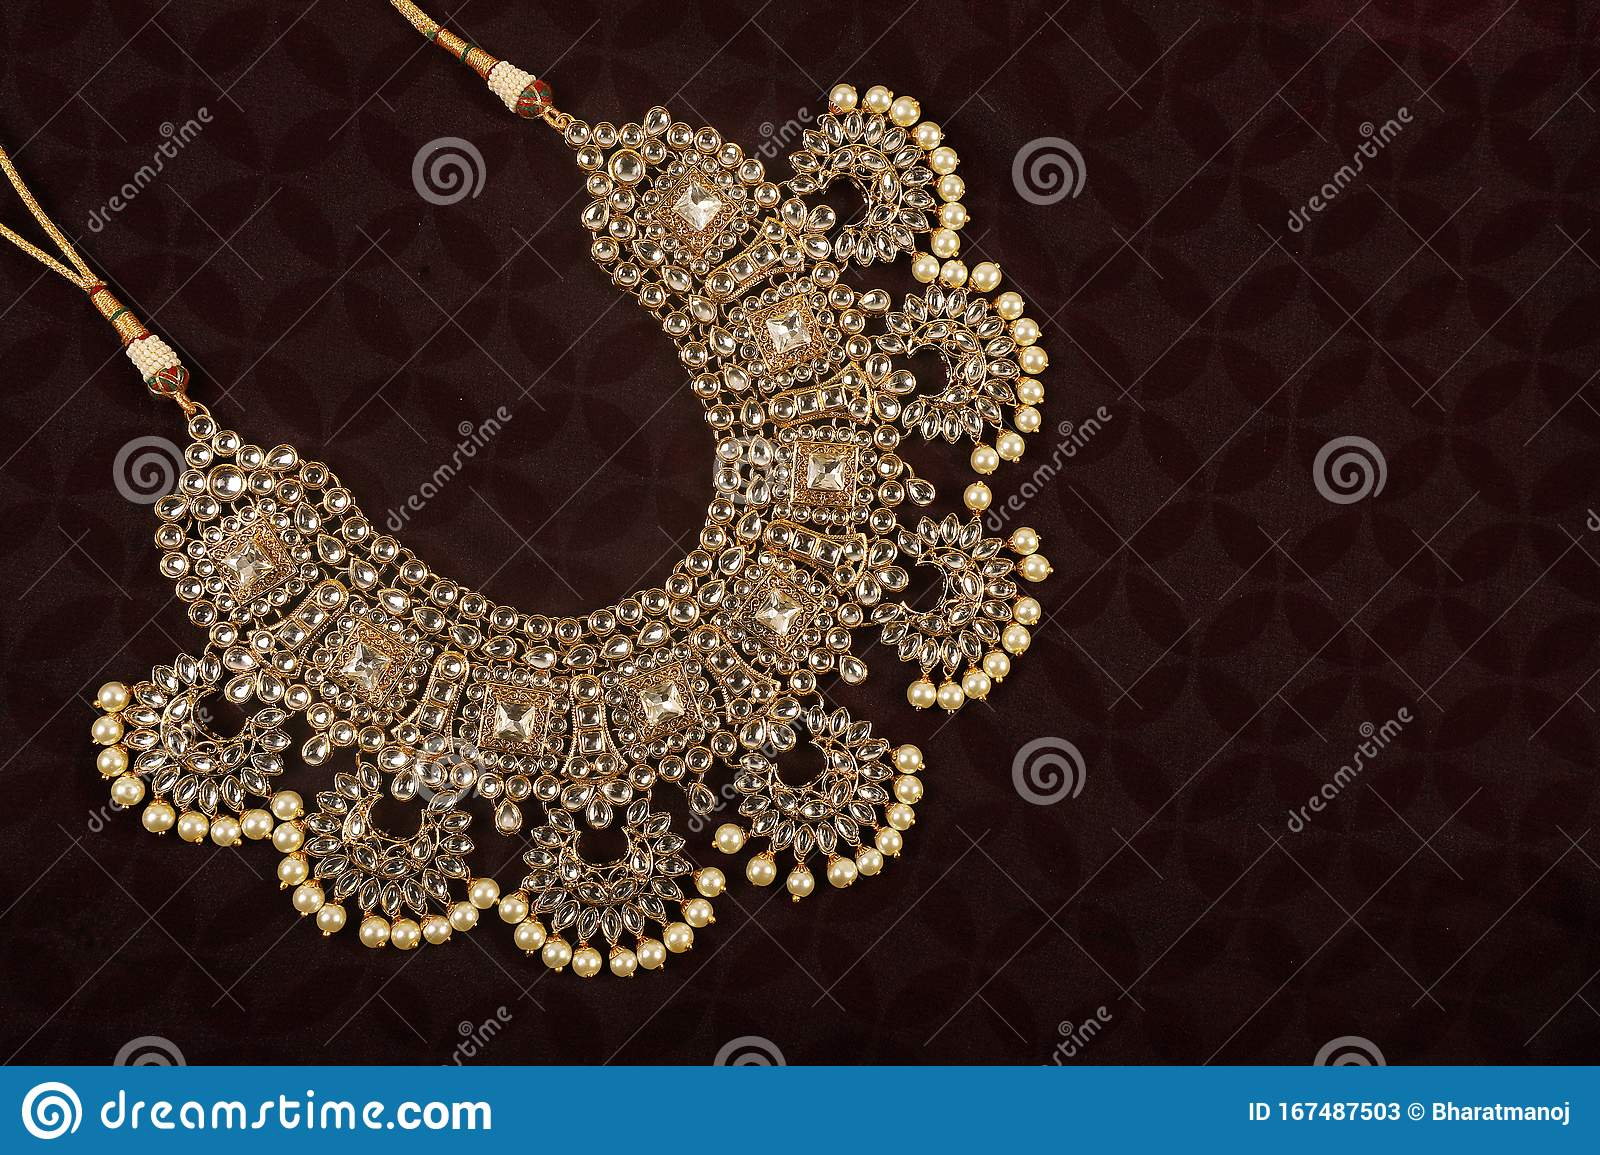 Authentic Traditional Indian Jewellery Necklace On Dark Background Wear In Neck In Wedding Festivals And Other Occasion Very Stock Image Image Of Design Beautiful 167487503